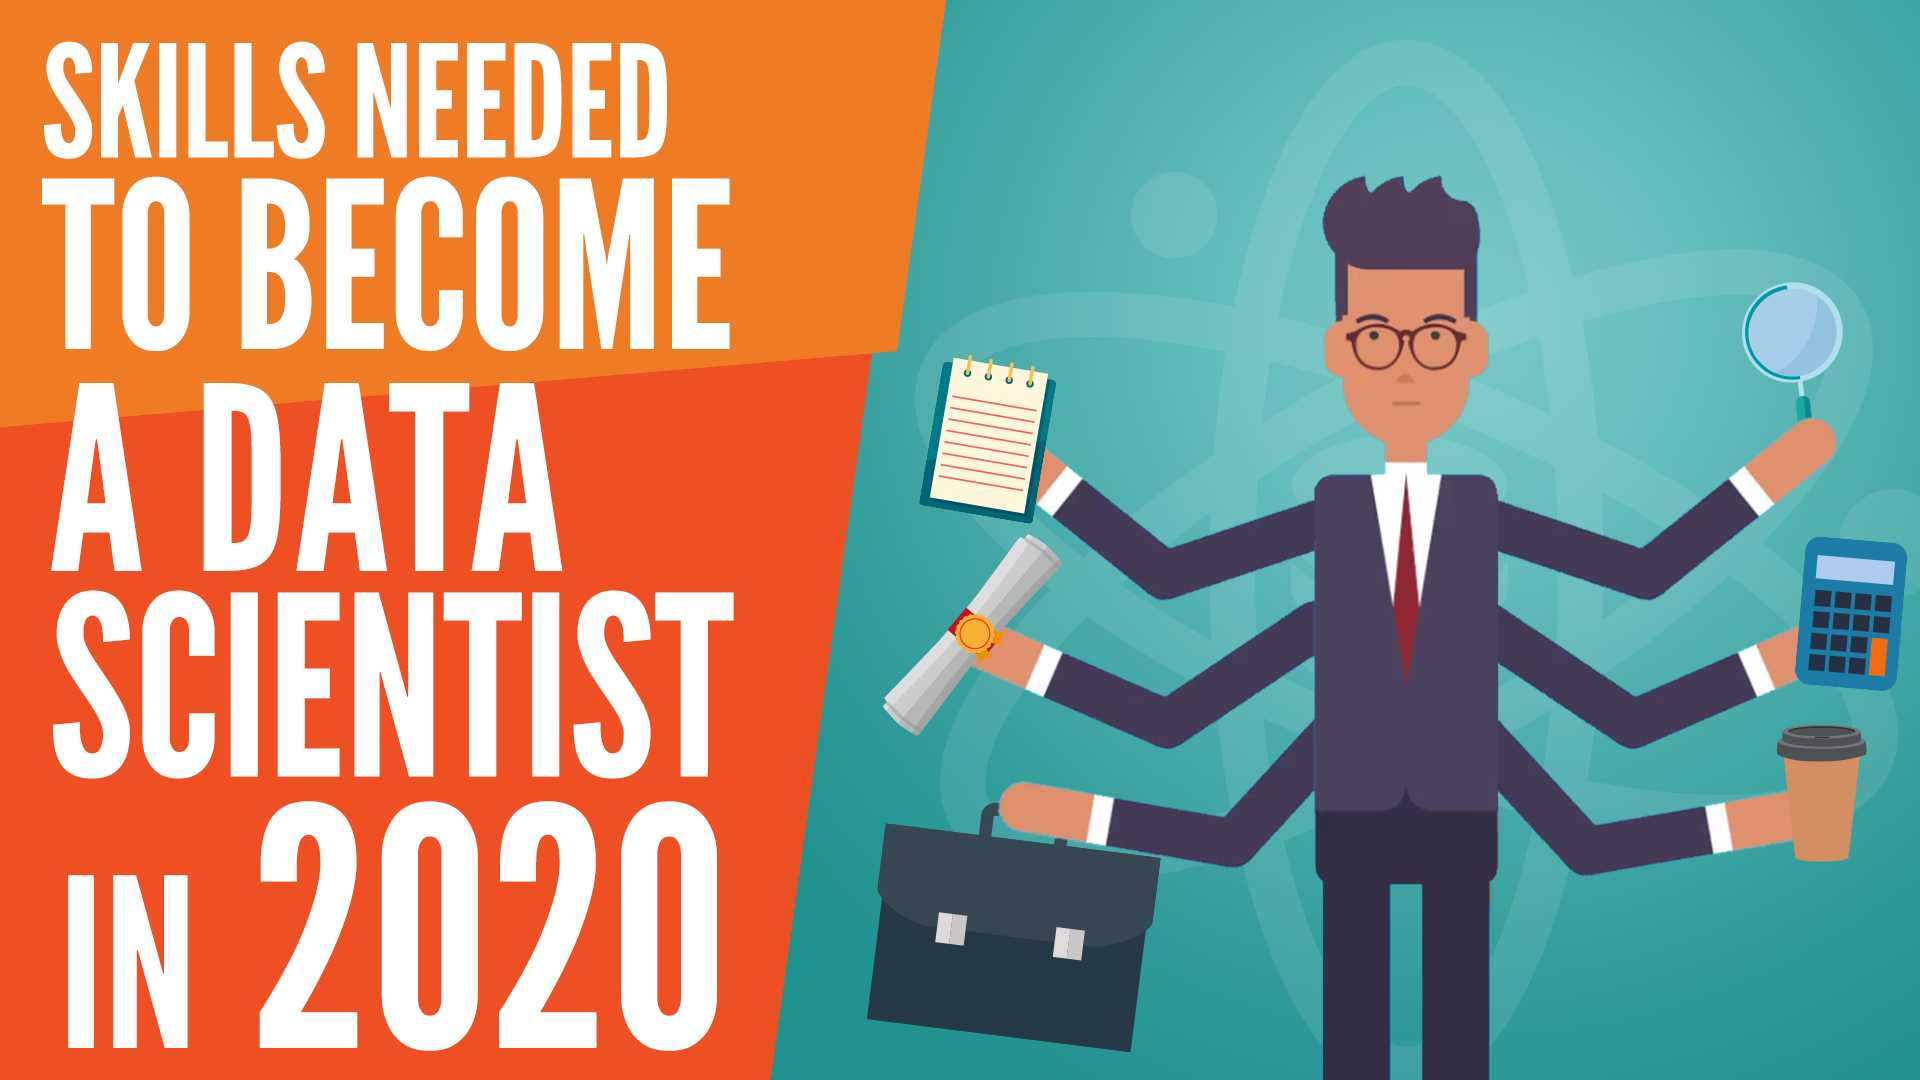 what are the skills you need to become a data scientist, data scientist skills, data scientist skillset, skills for data scientist